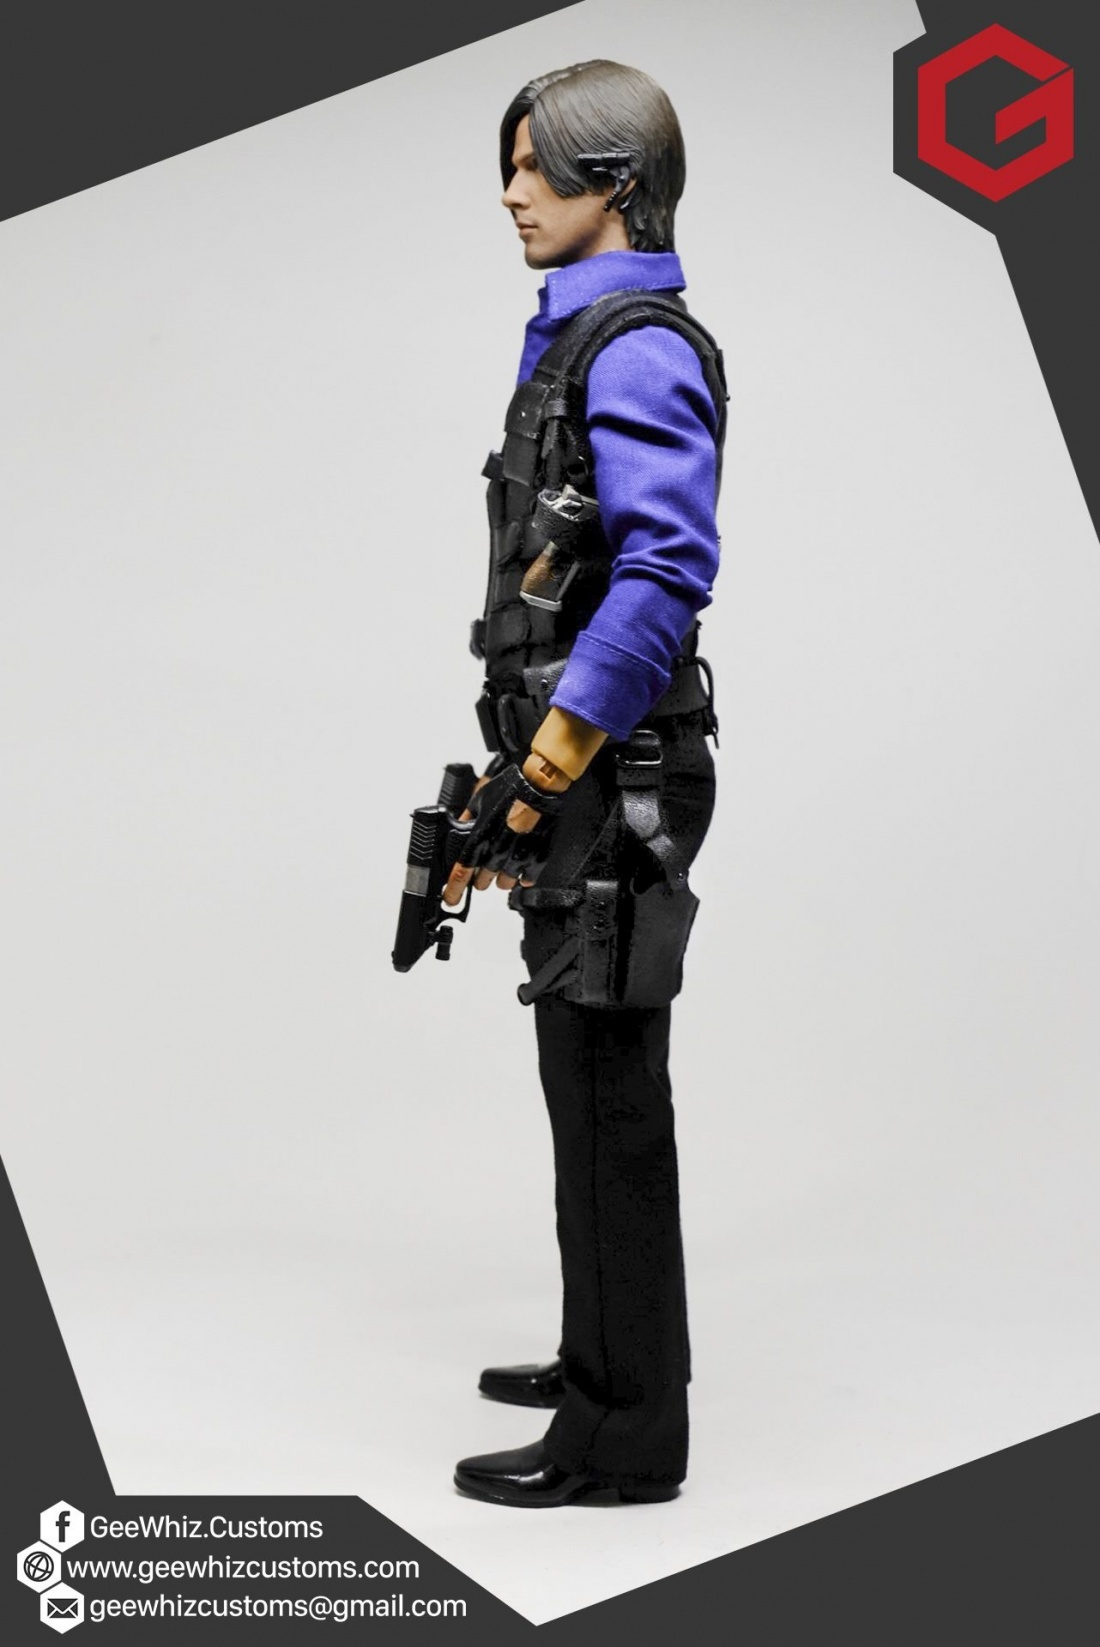 Geewhiz Customs Leon Kennedy S Resident Evil 6 China Outfit 1 6